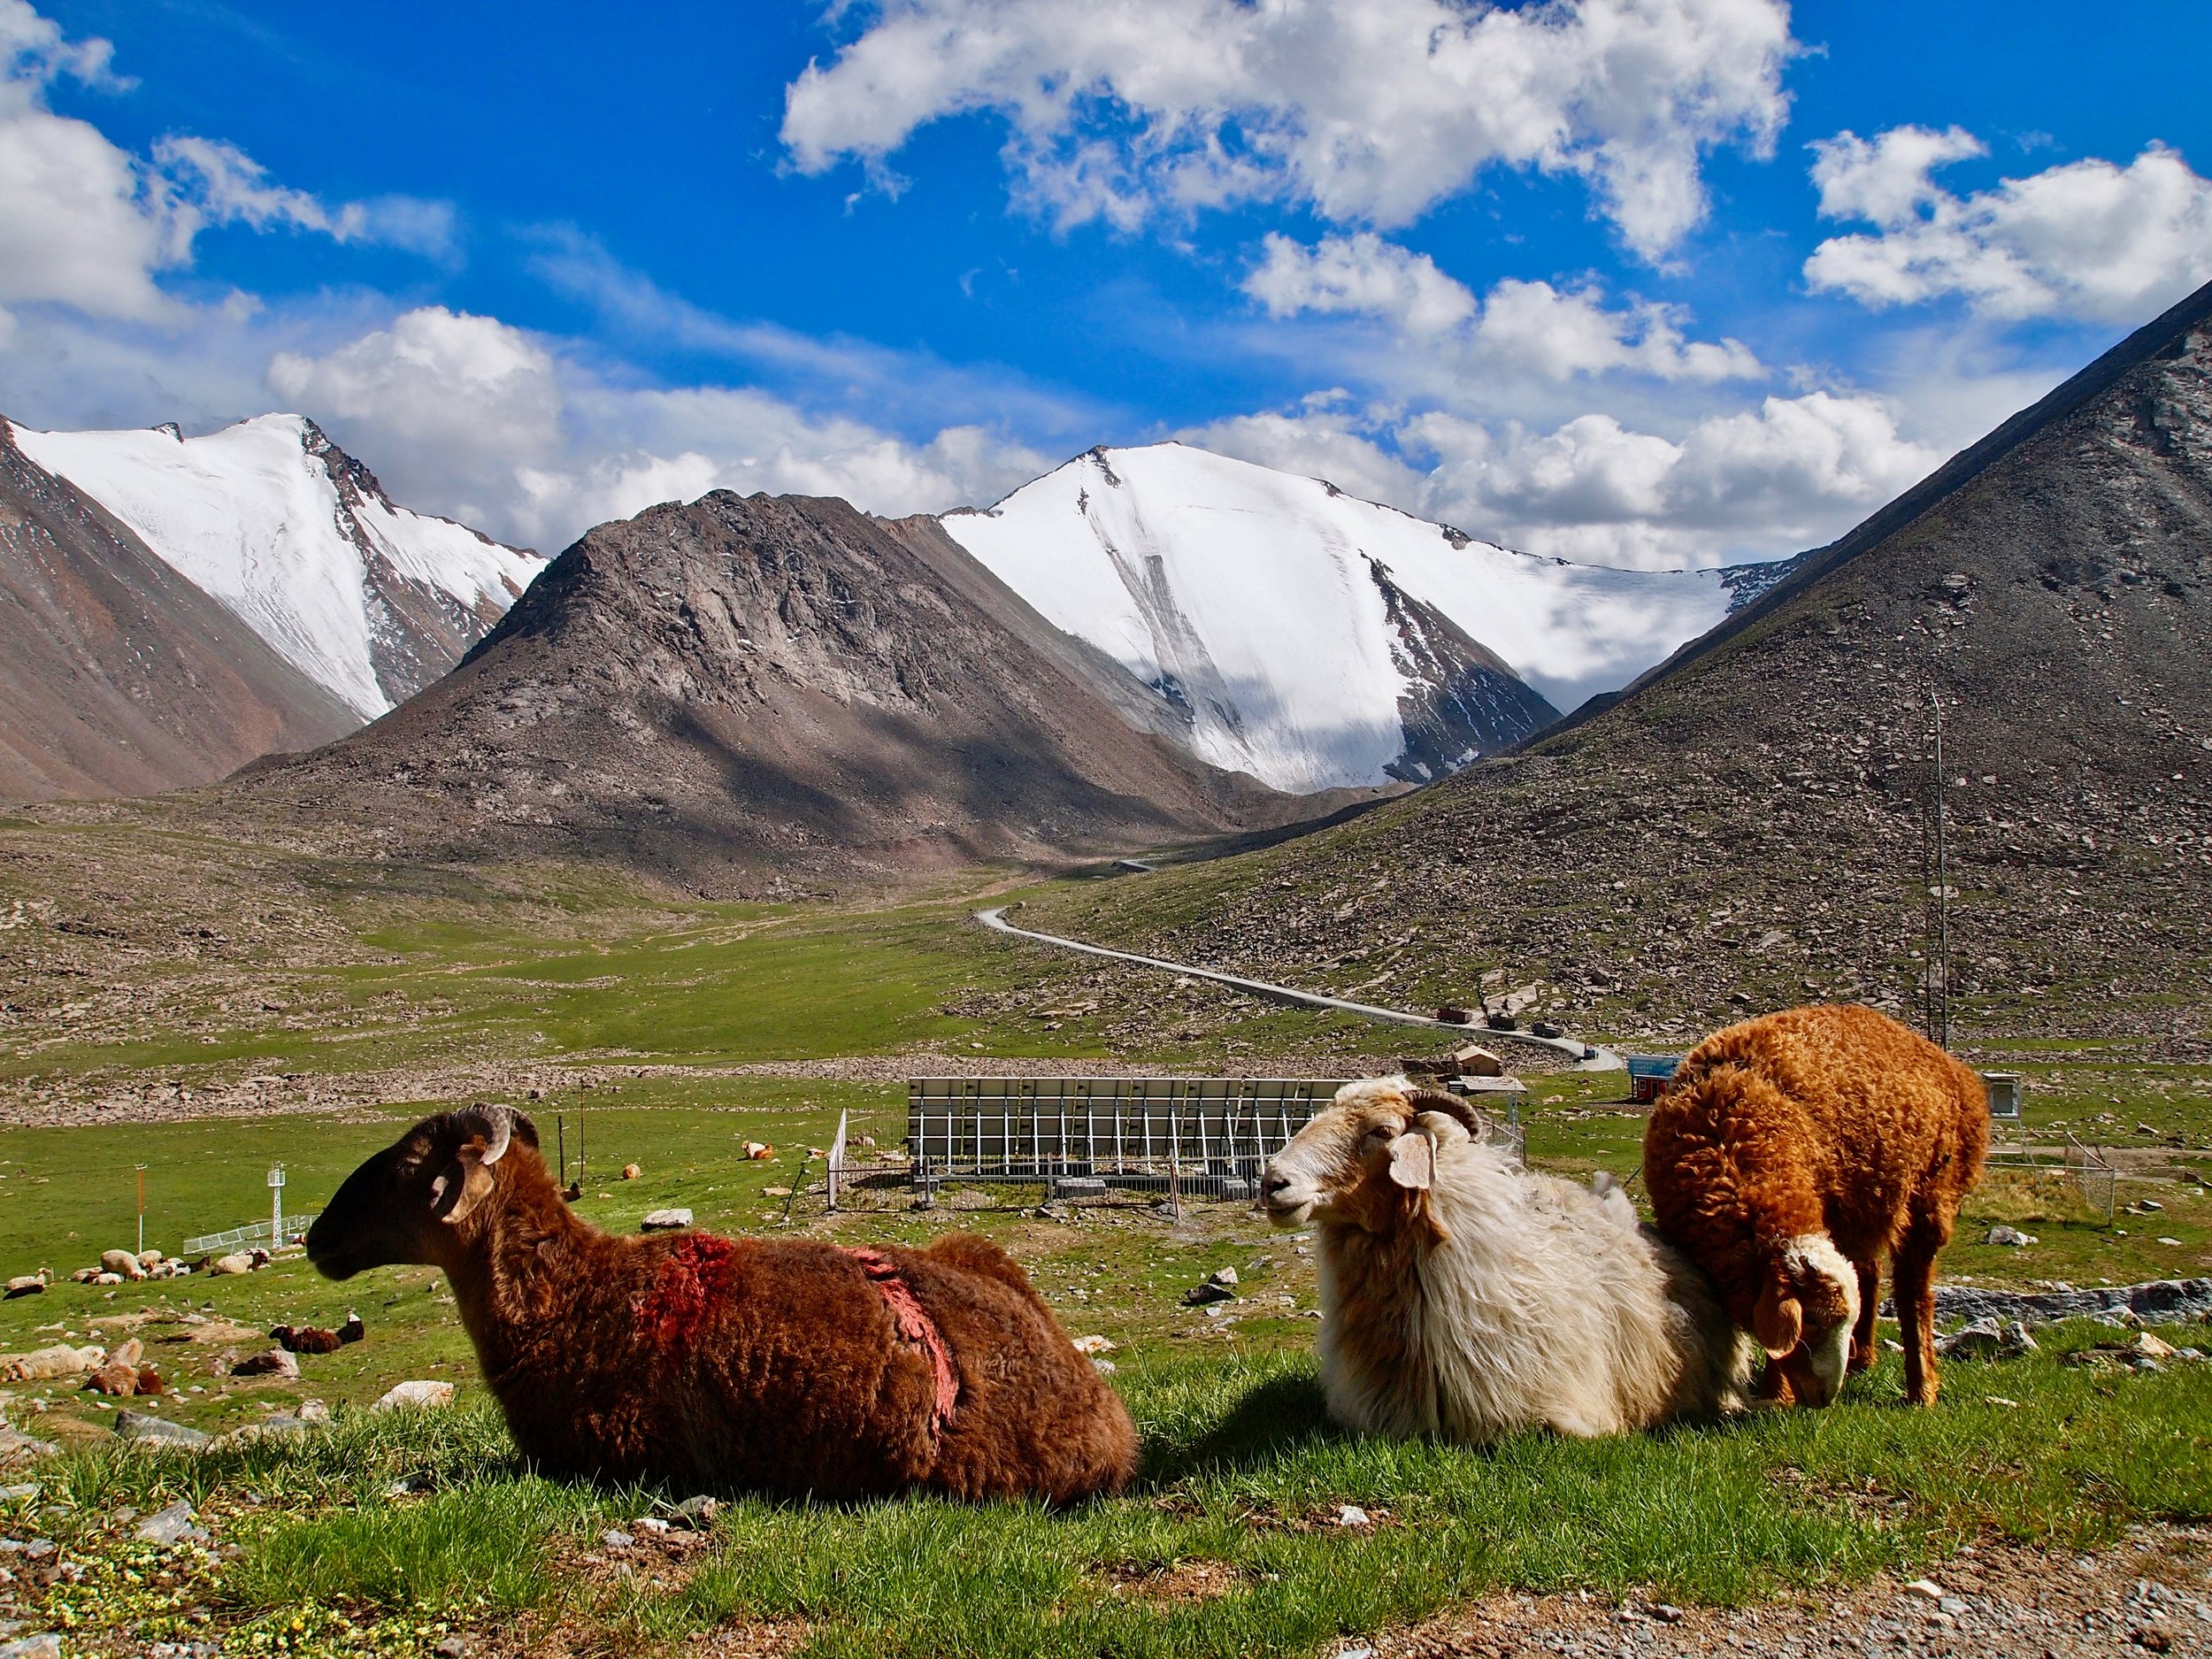 Animals grazing in summertime on land that used to be covered year round by the Tianshan Number 1 Glacier in Xinjiang, China. Photo: (C) Remko Tanis